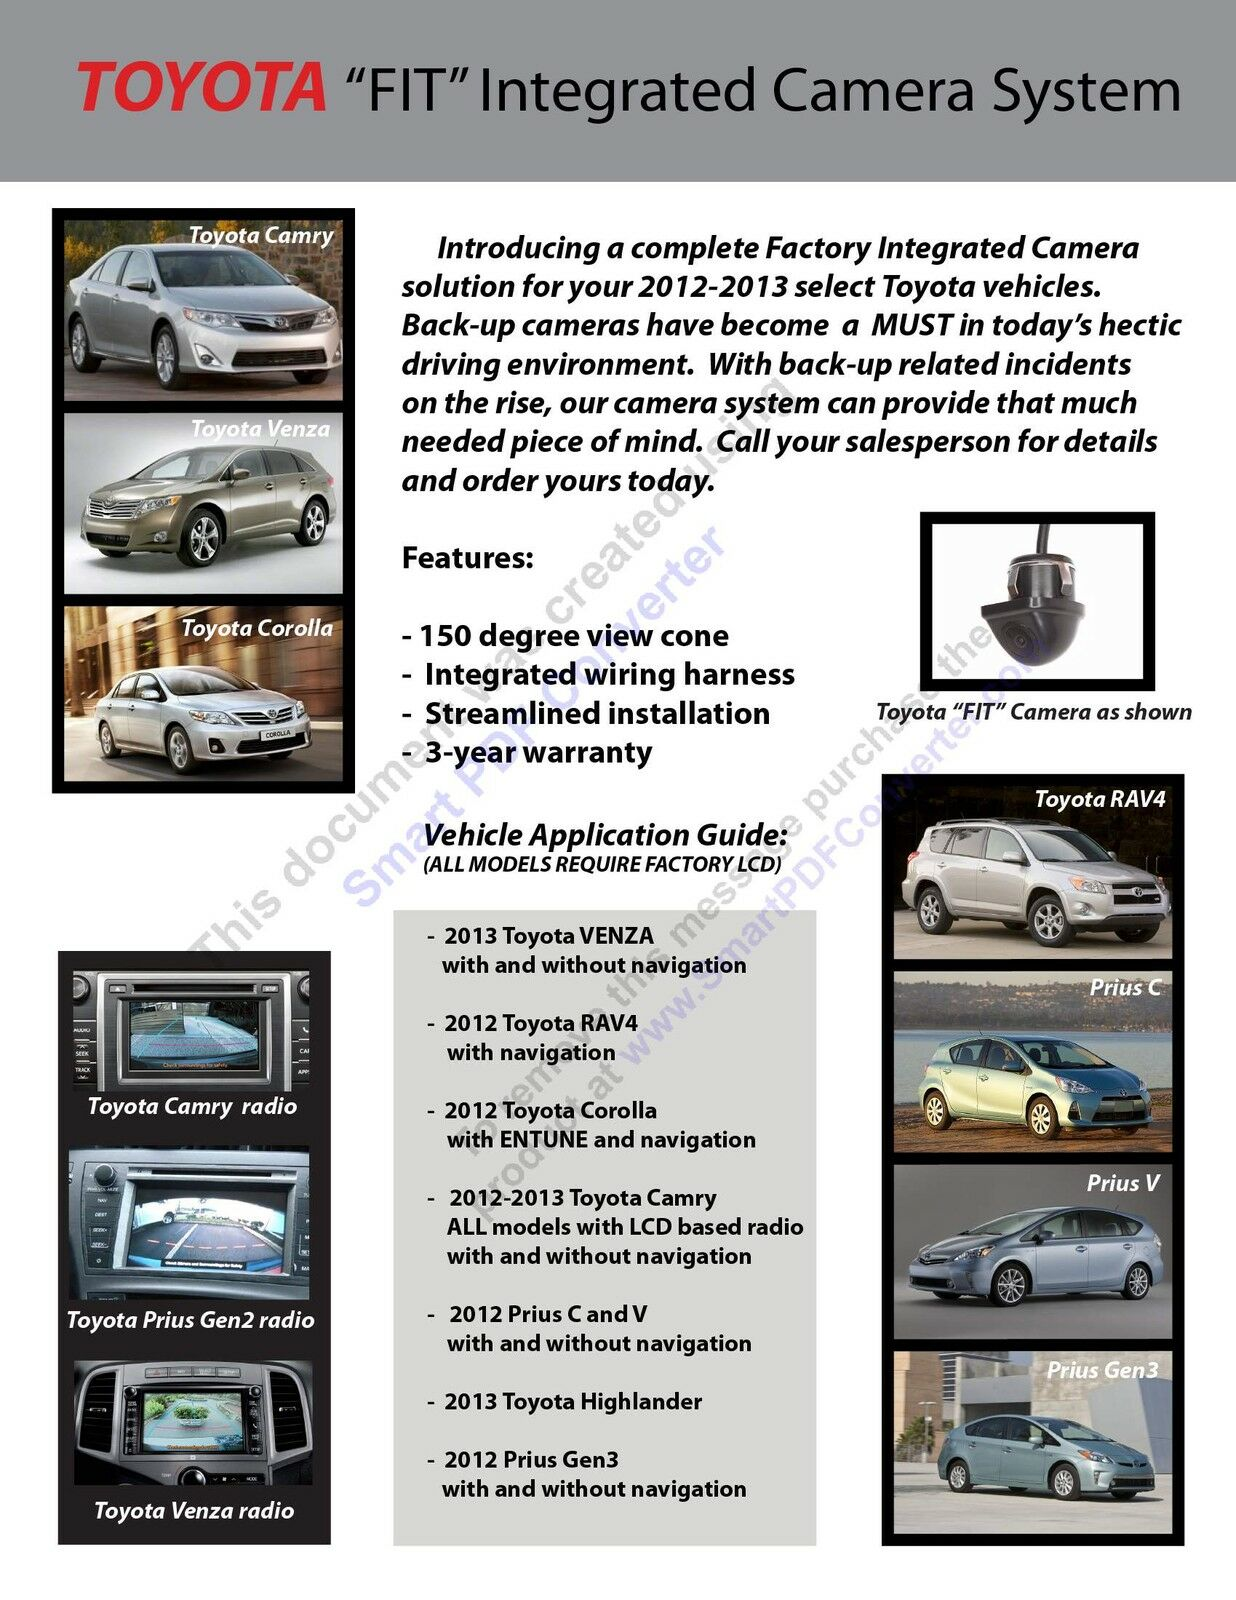 Subaru Brz 2013 2014 Aftermarket Back Up Camera System 3 Year Toyota Venza Radio Wiring Harness Norton Secured Powered By Verisign